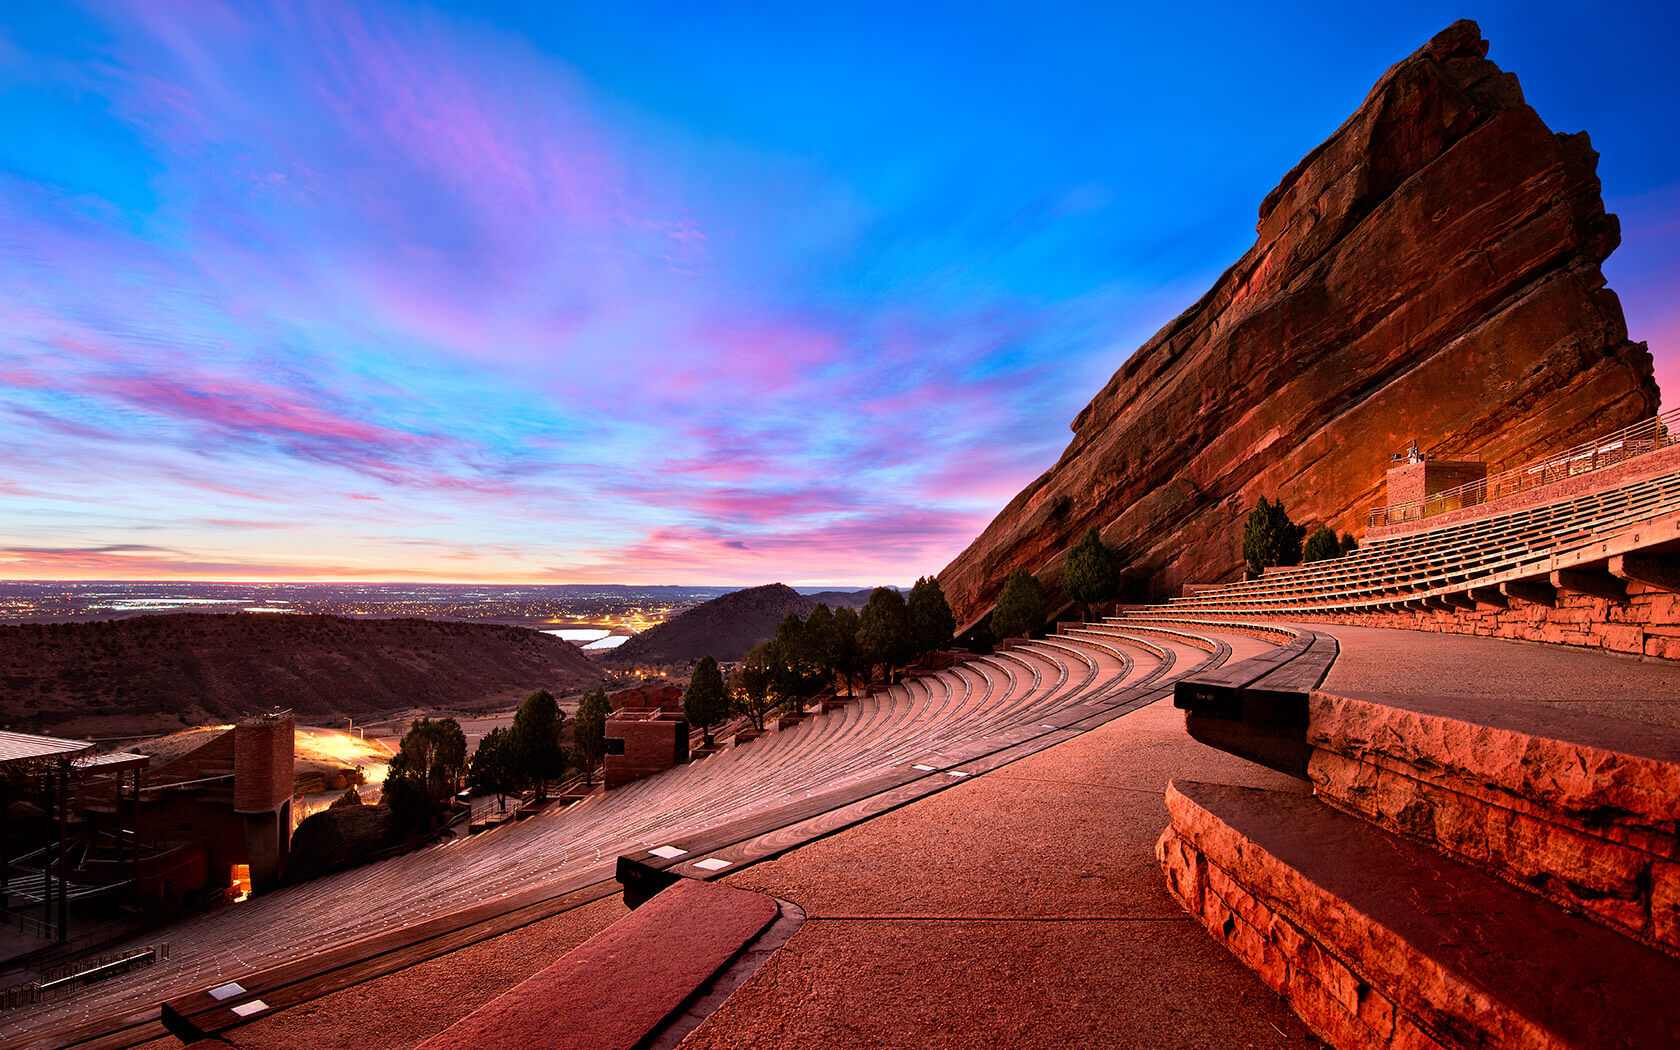 view of red rocks with a blue and pink sky